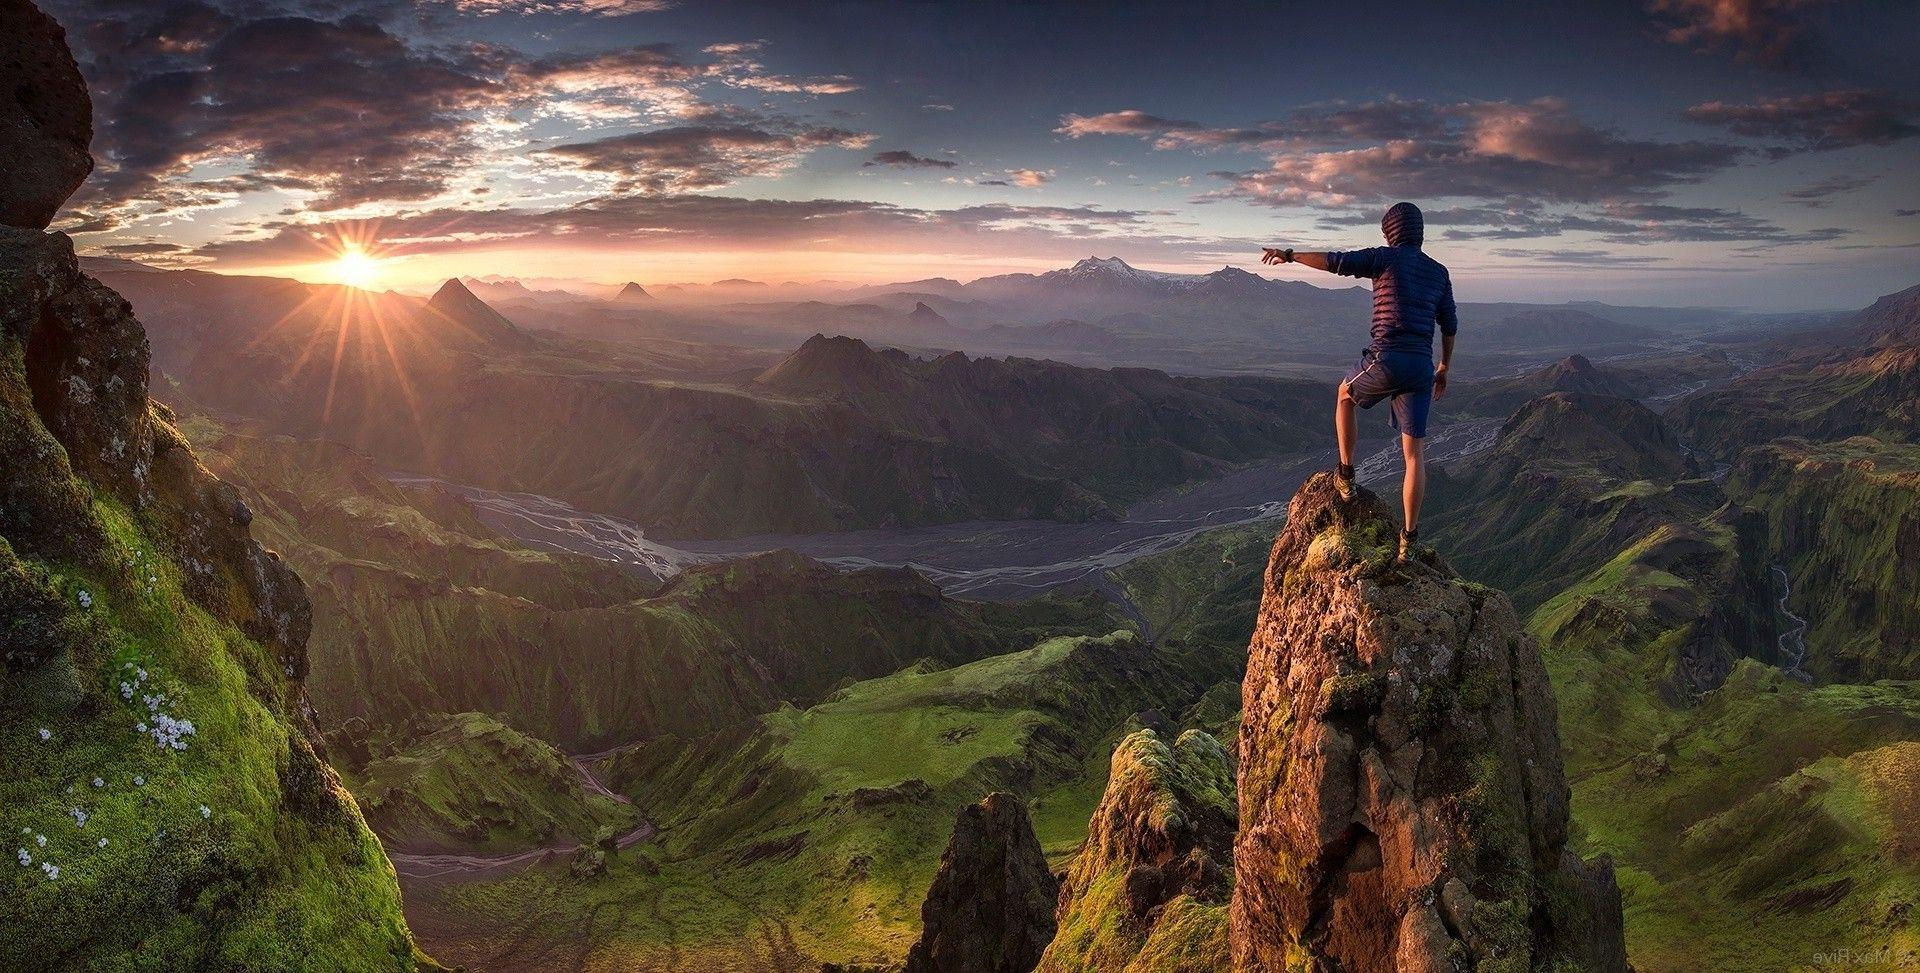 For Your Desktop: Hiking Wallpapers, 31 Top Quality Hiking ...